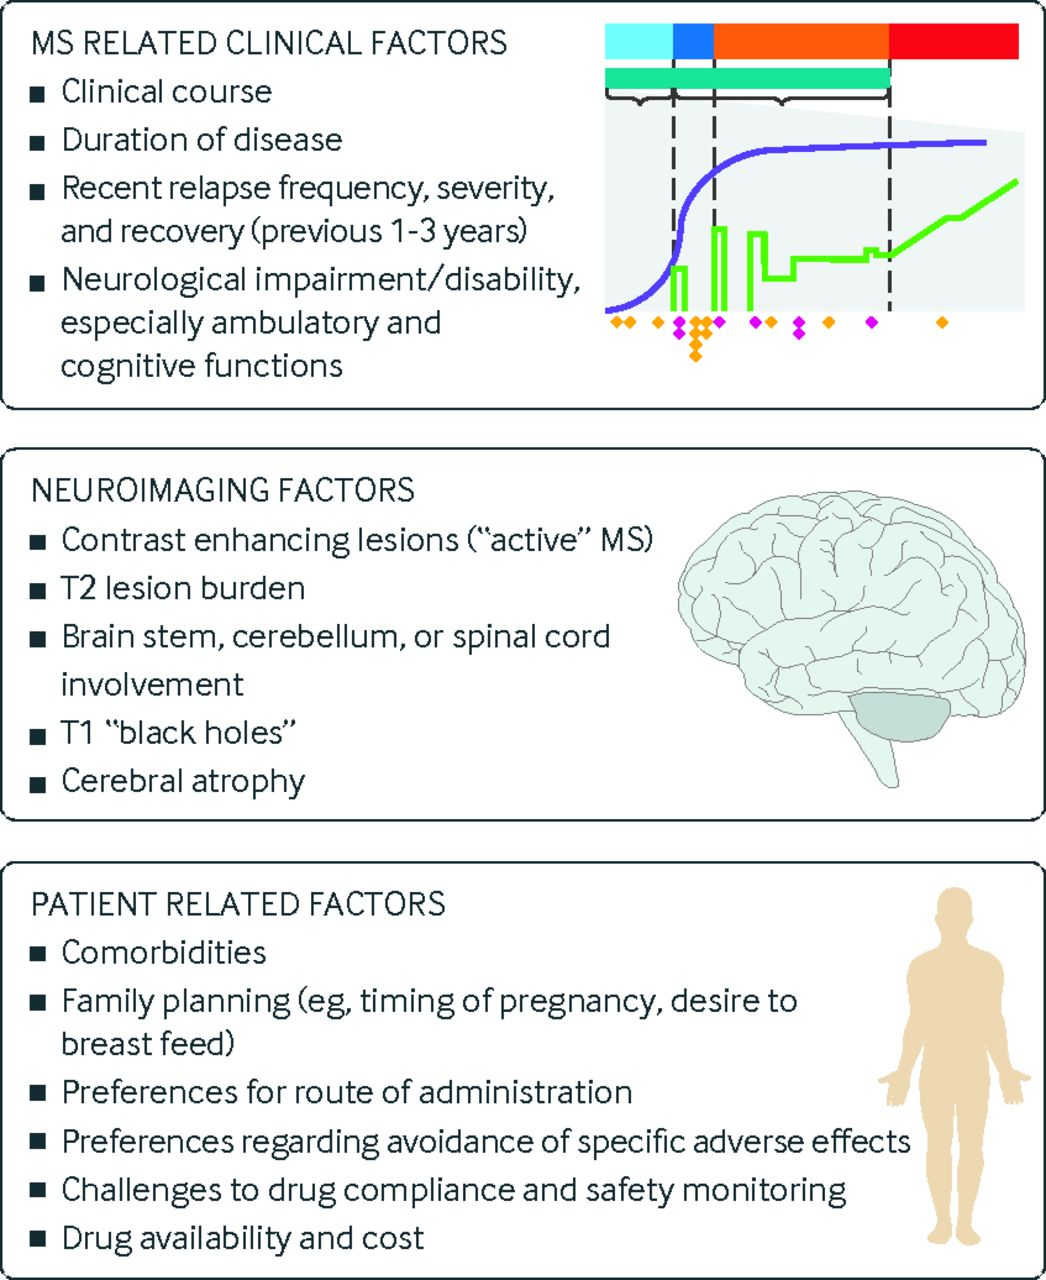 Disease modifying therapies for relapsing multiple sclerosis | The BMJ